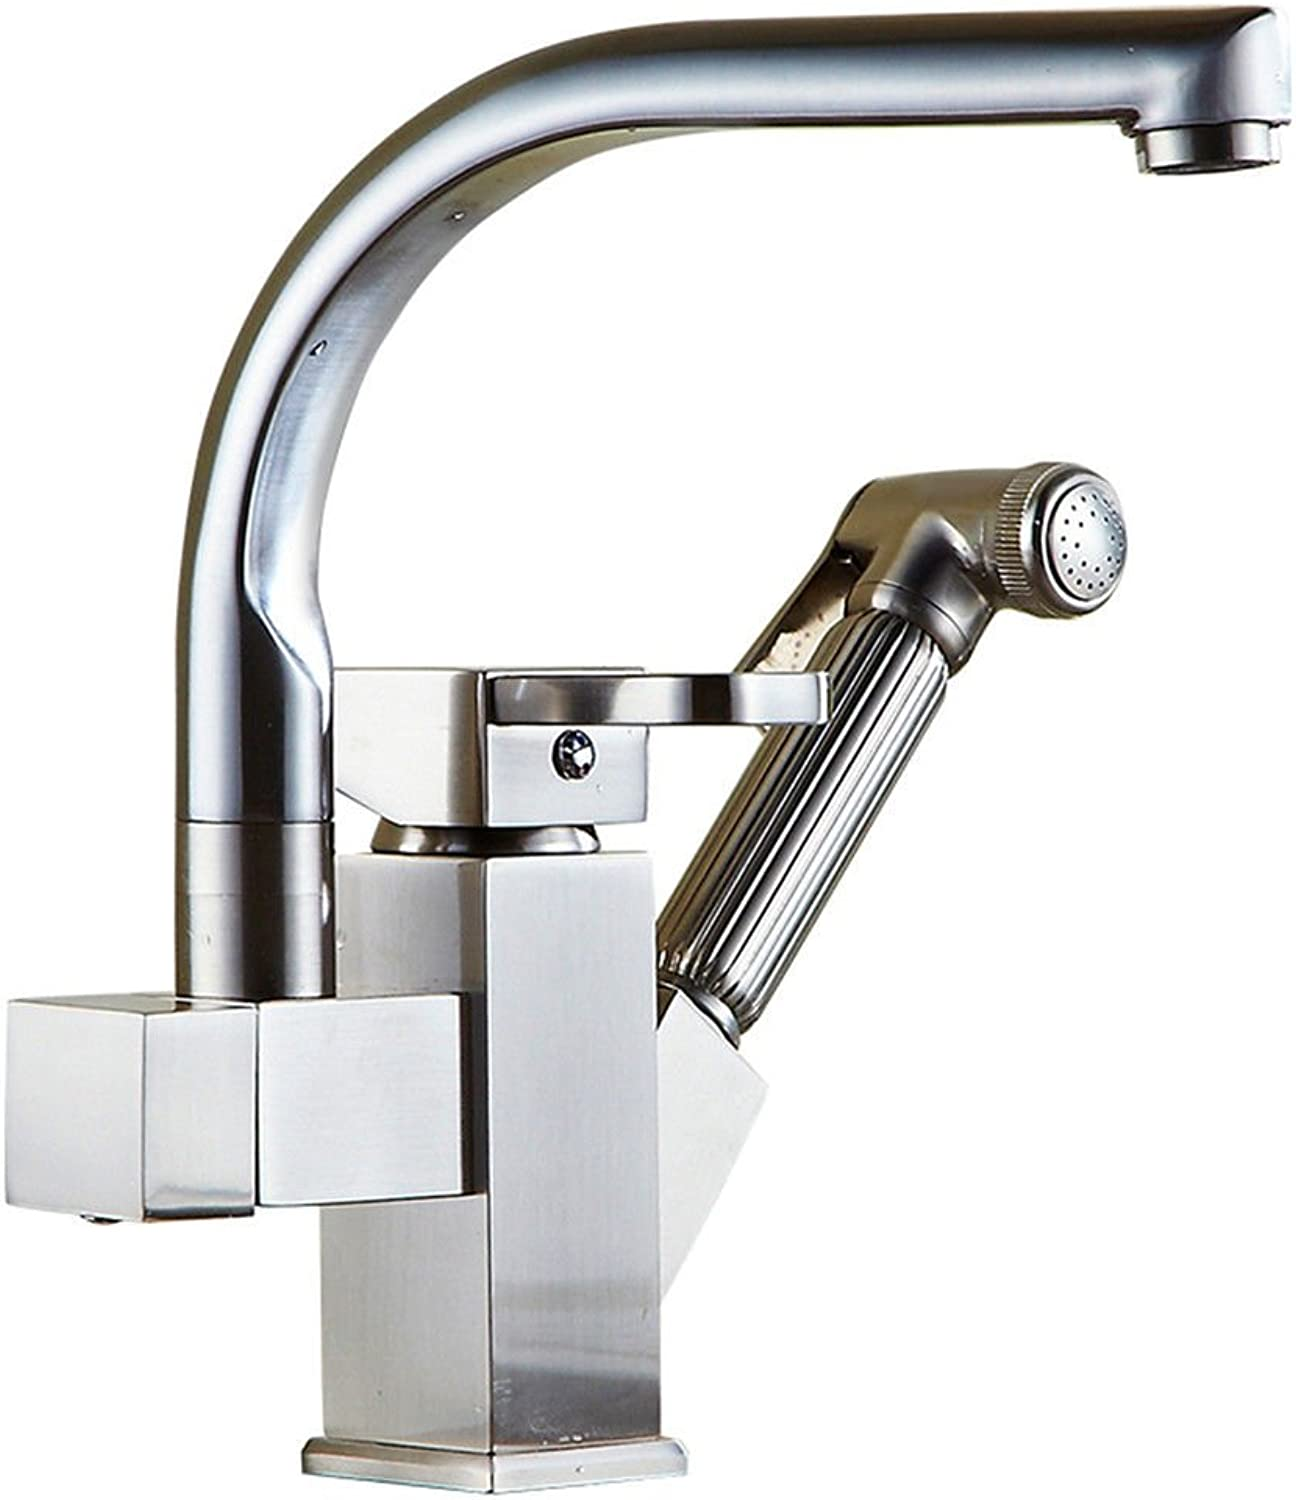 Lpophy Bathroom Sink Mixer Taps Faucet Bath Waterfall Cold and Hot Water Tap for Washroom Bathroom and Kitchen Pulling Hot and Cold 11